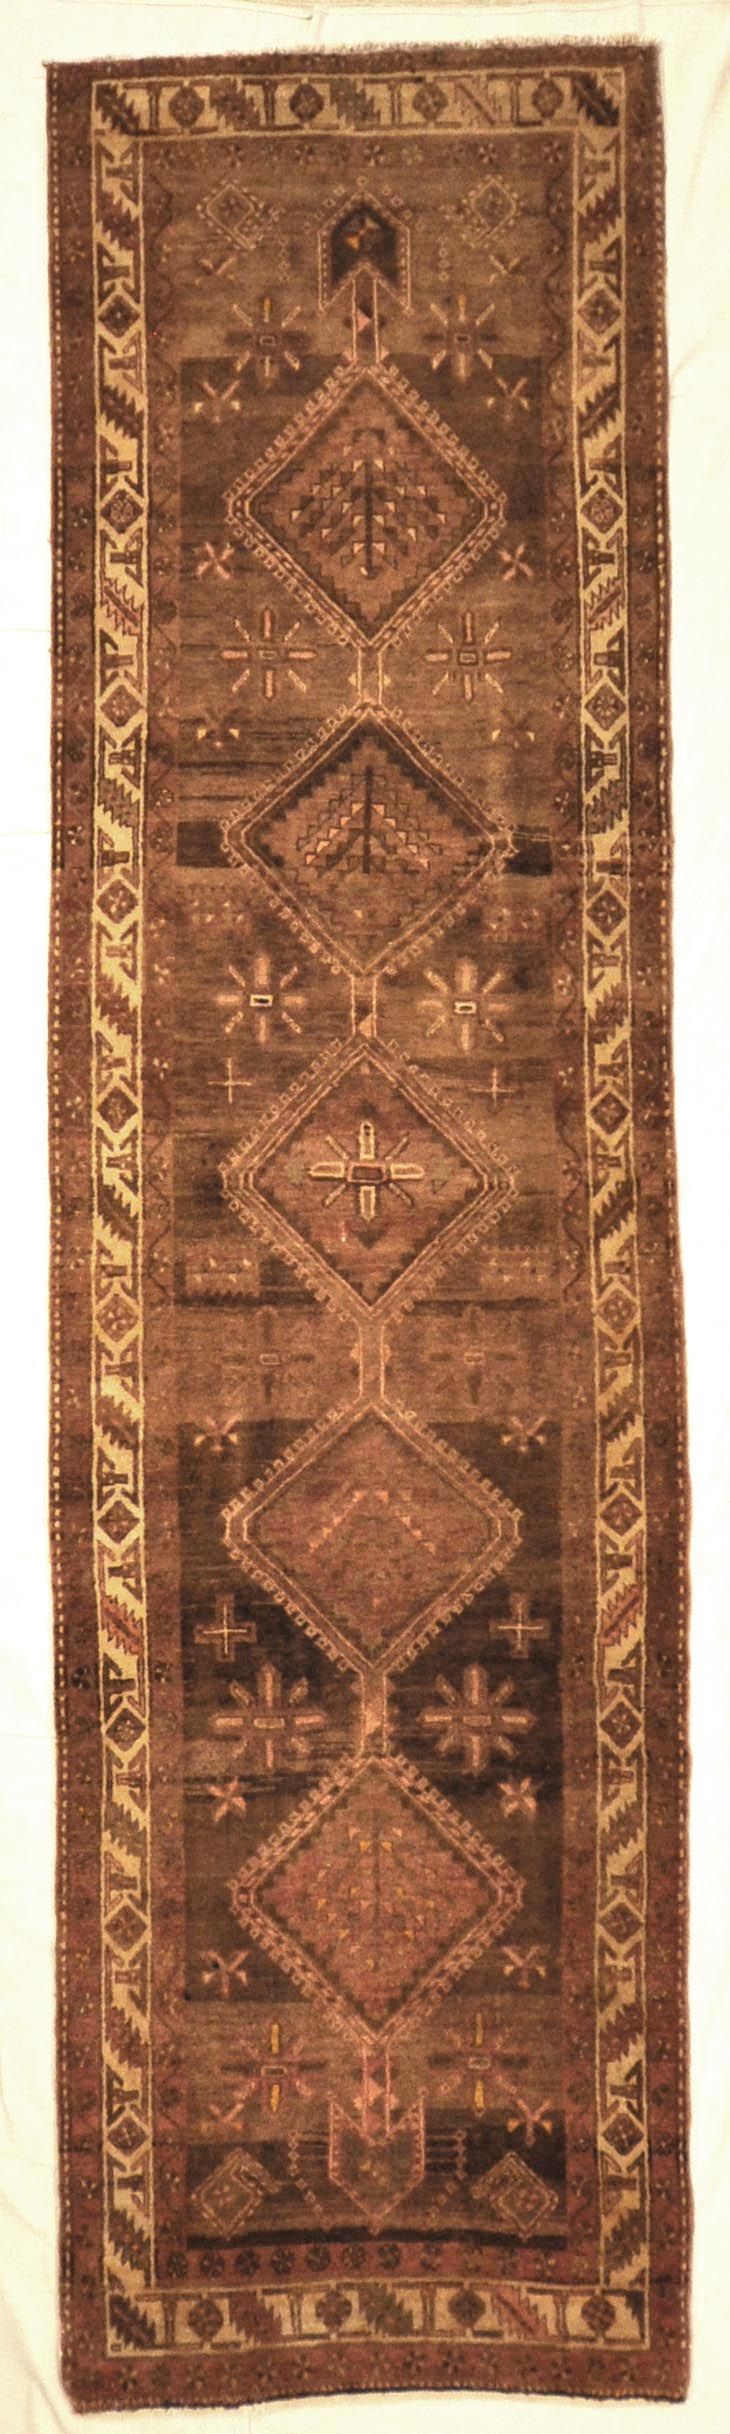 Antique Heriz Runner Carpet Rugs and More 27818